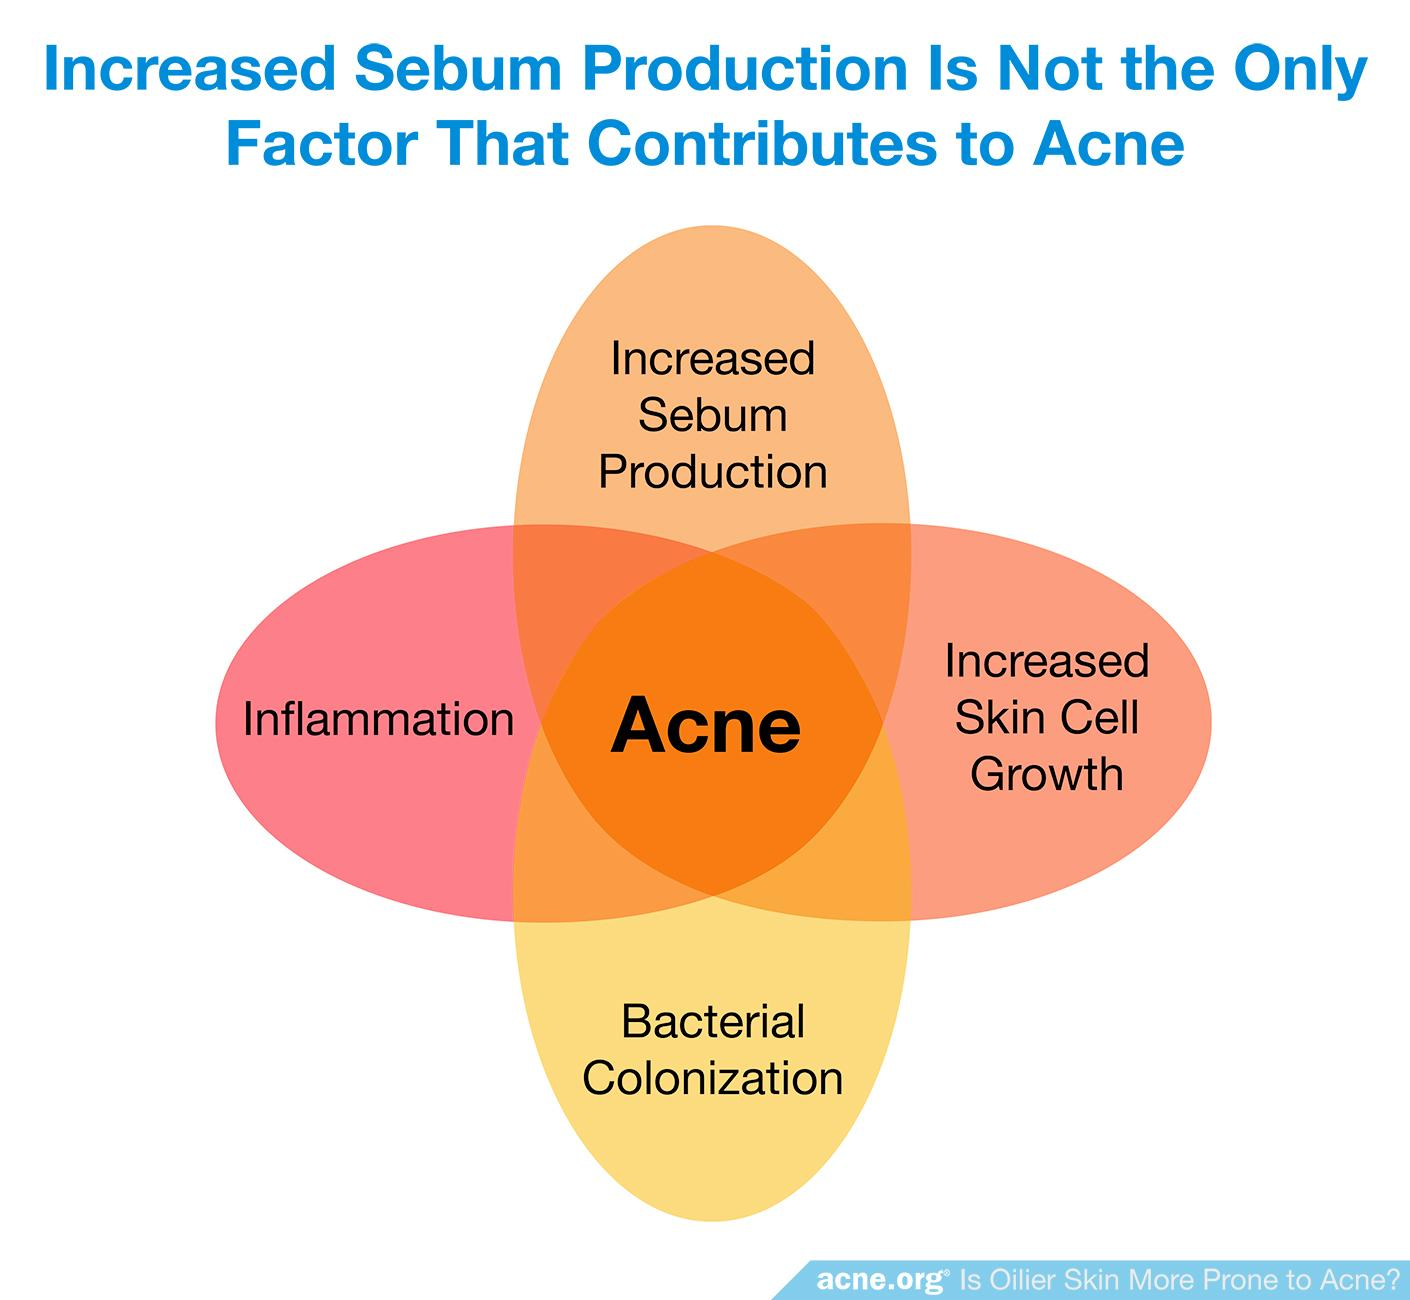 Increased Sebum Production Is Not the Only Factor that Contributes to Acne